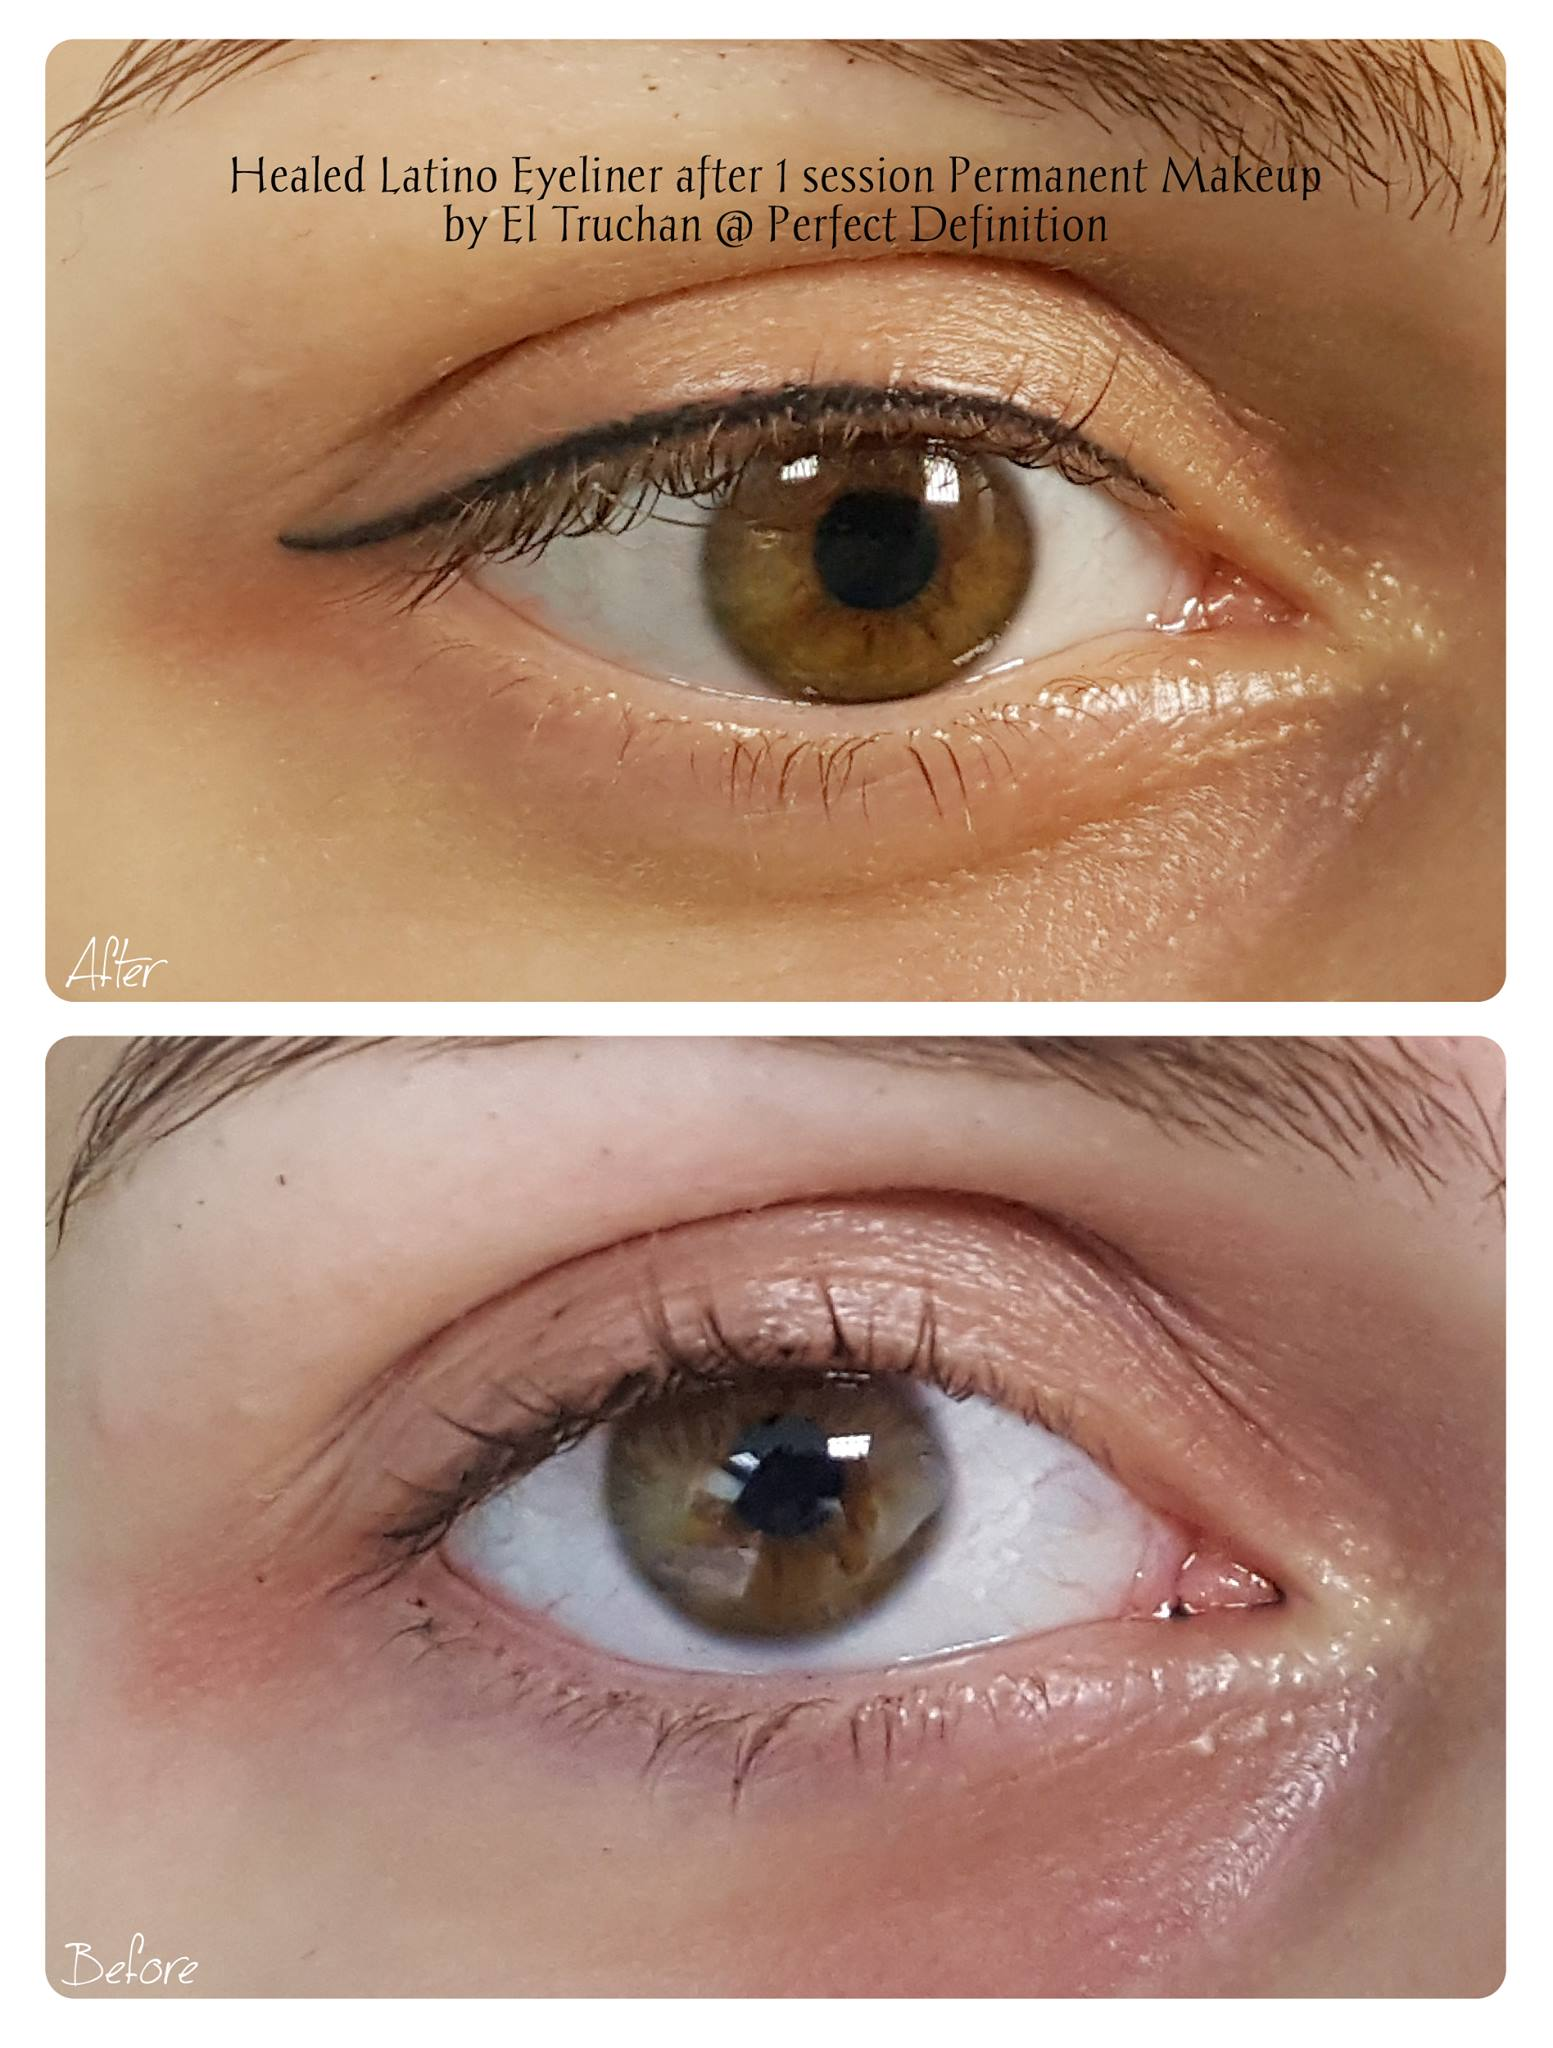 Healed Latino Eyeliner after 1 Session P